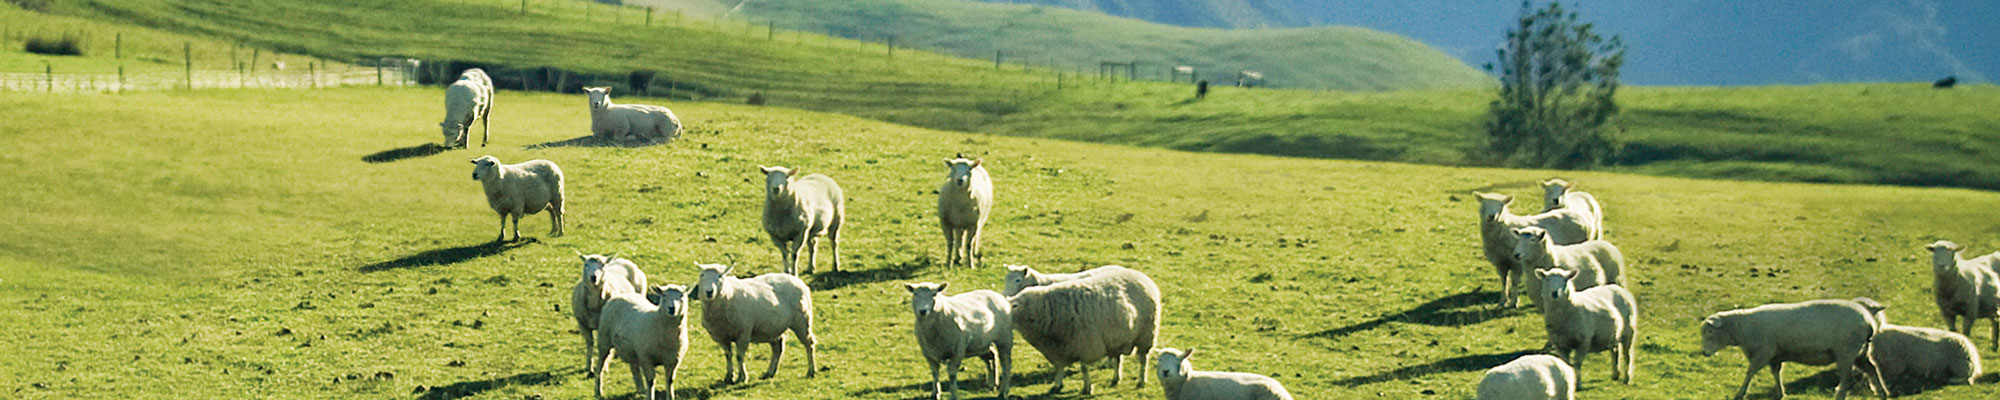 A herd of lamb in a standing in a pasture